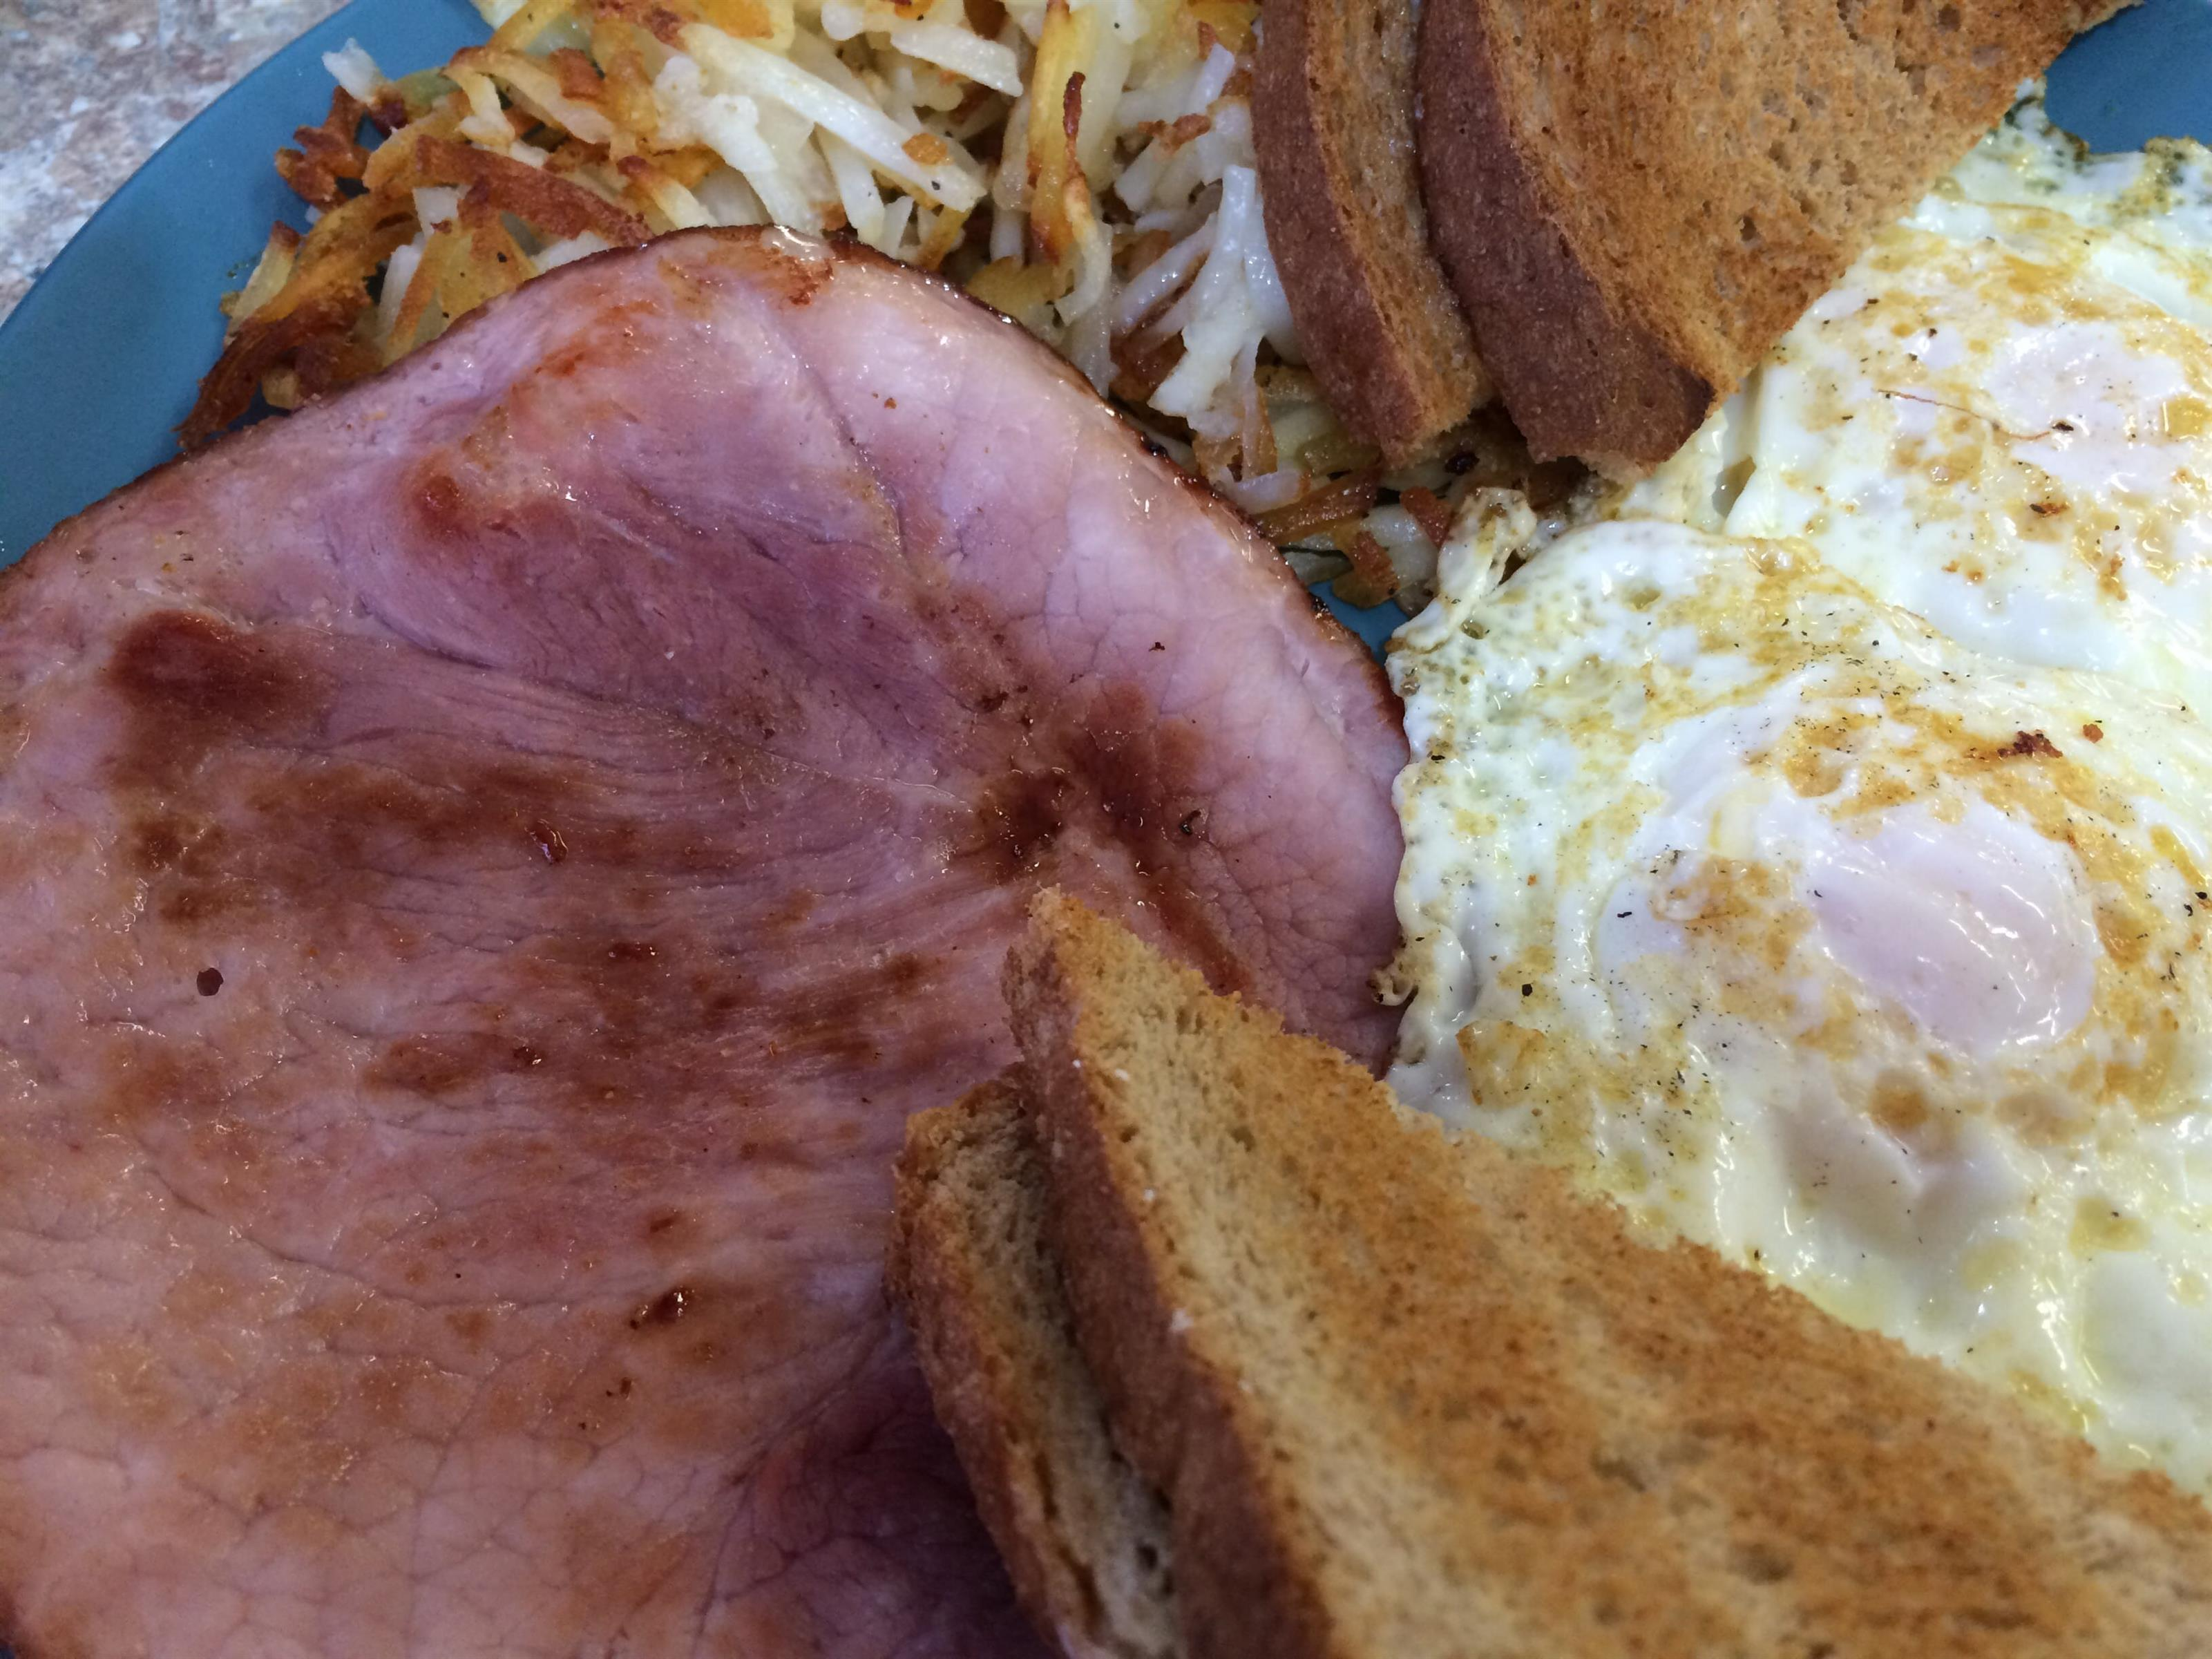 ham with toast, hash browns, and eggs on a plate